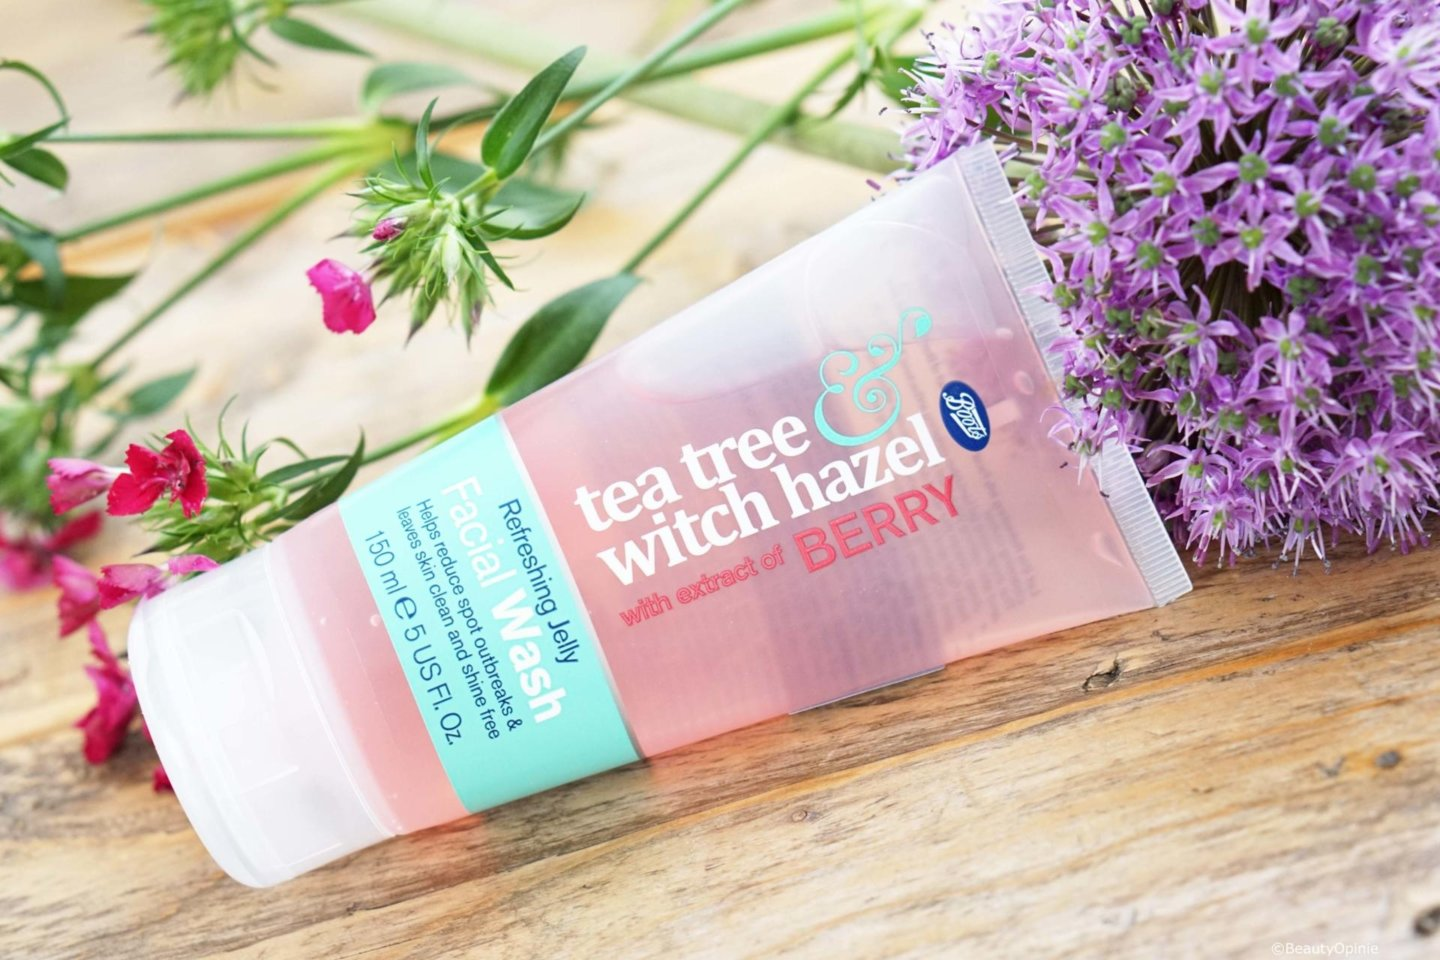 Boots Tea Tree & Witch Hazel Berry Boost Jelly Face Wash